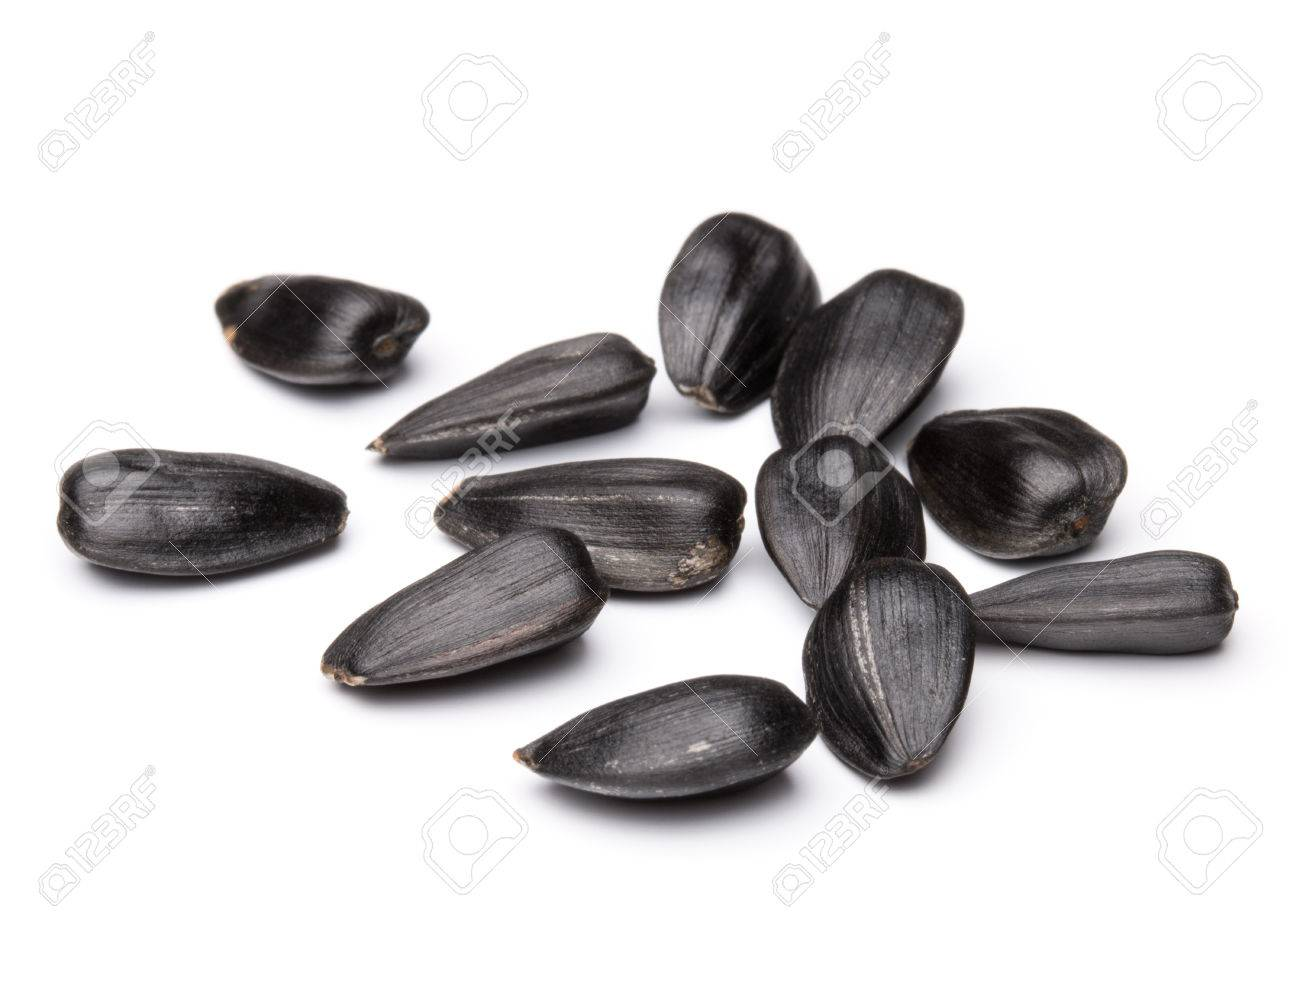 Sunflower seeds isolated on white background close up - 47792332